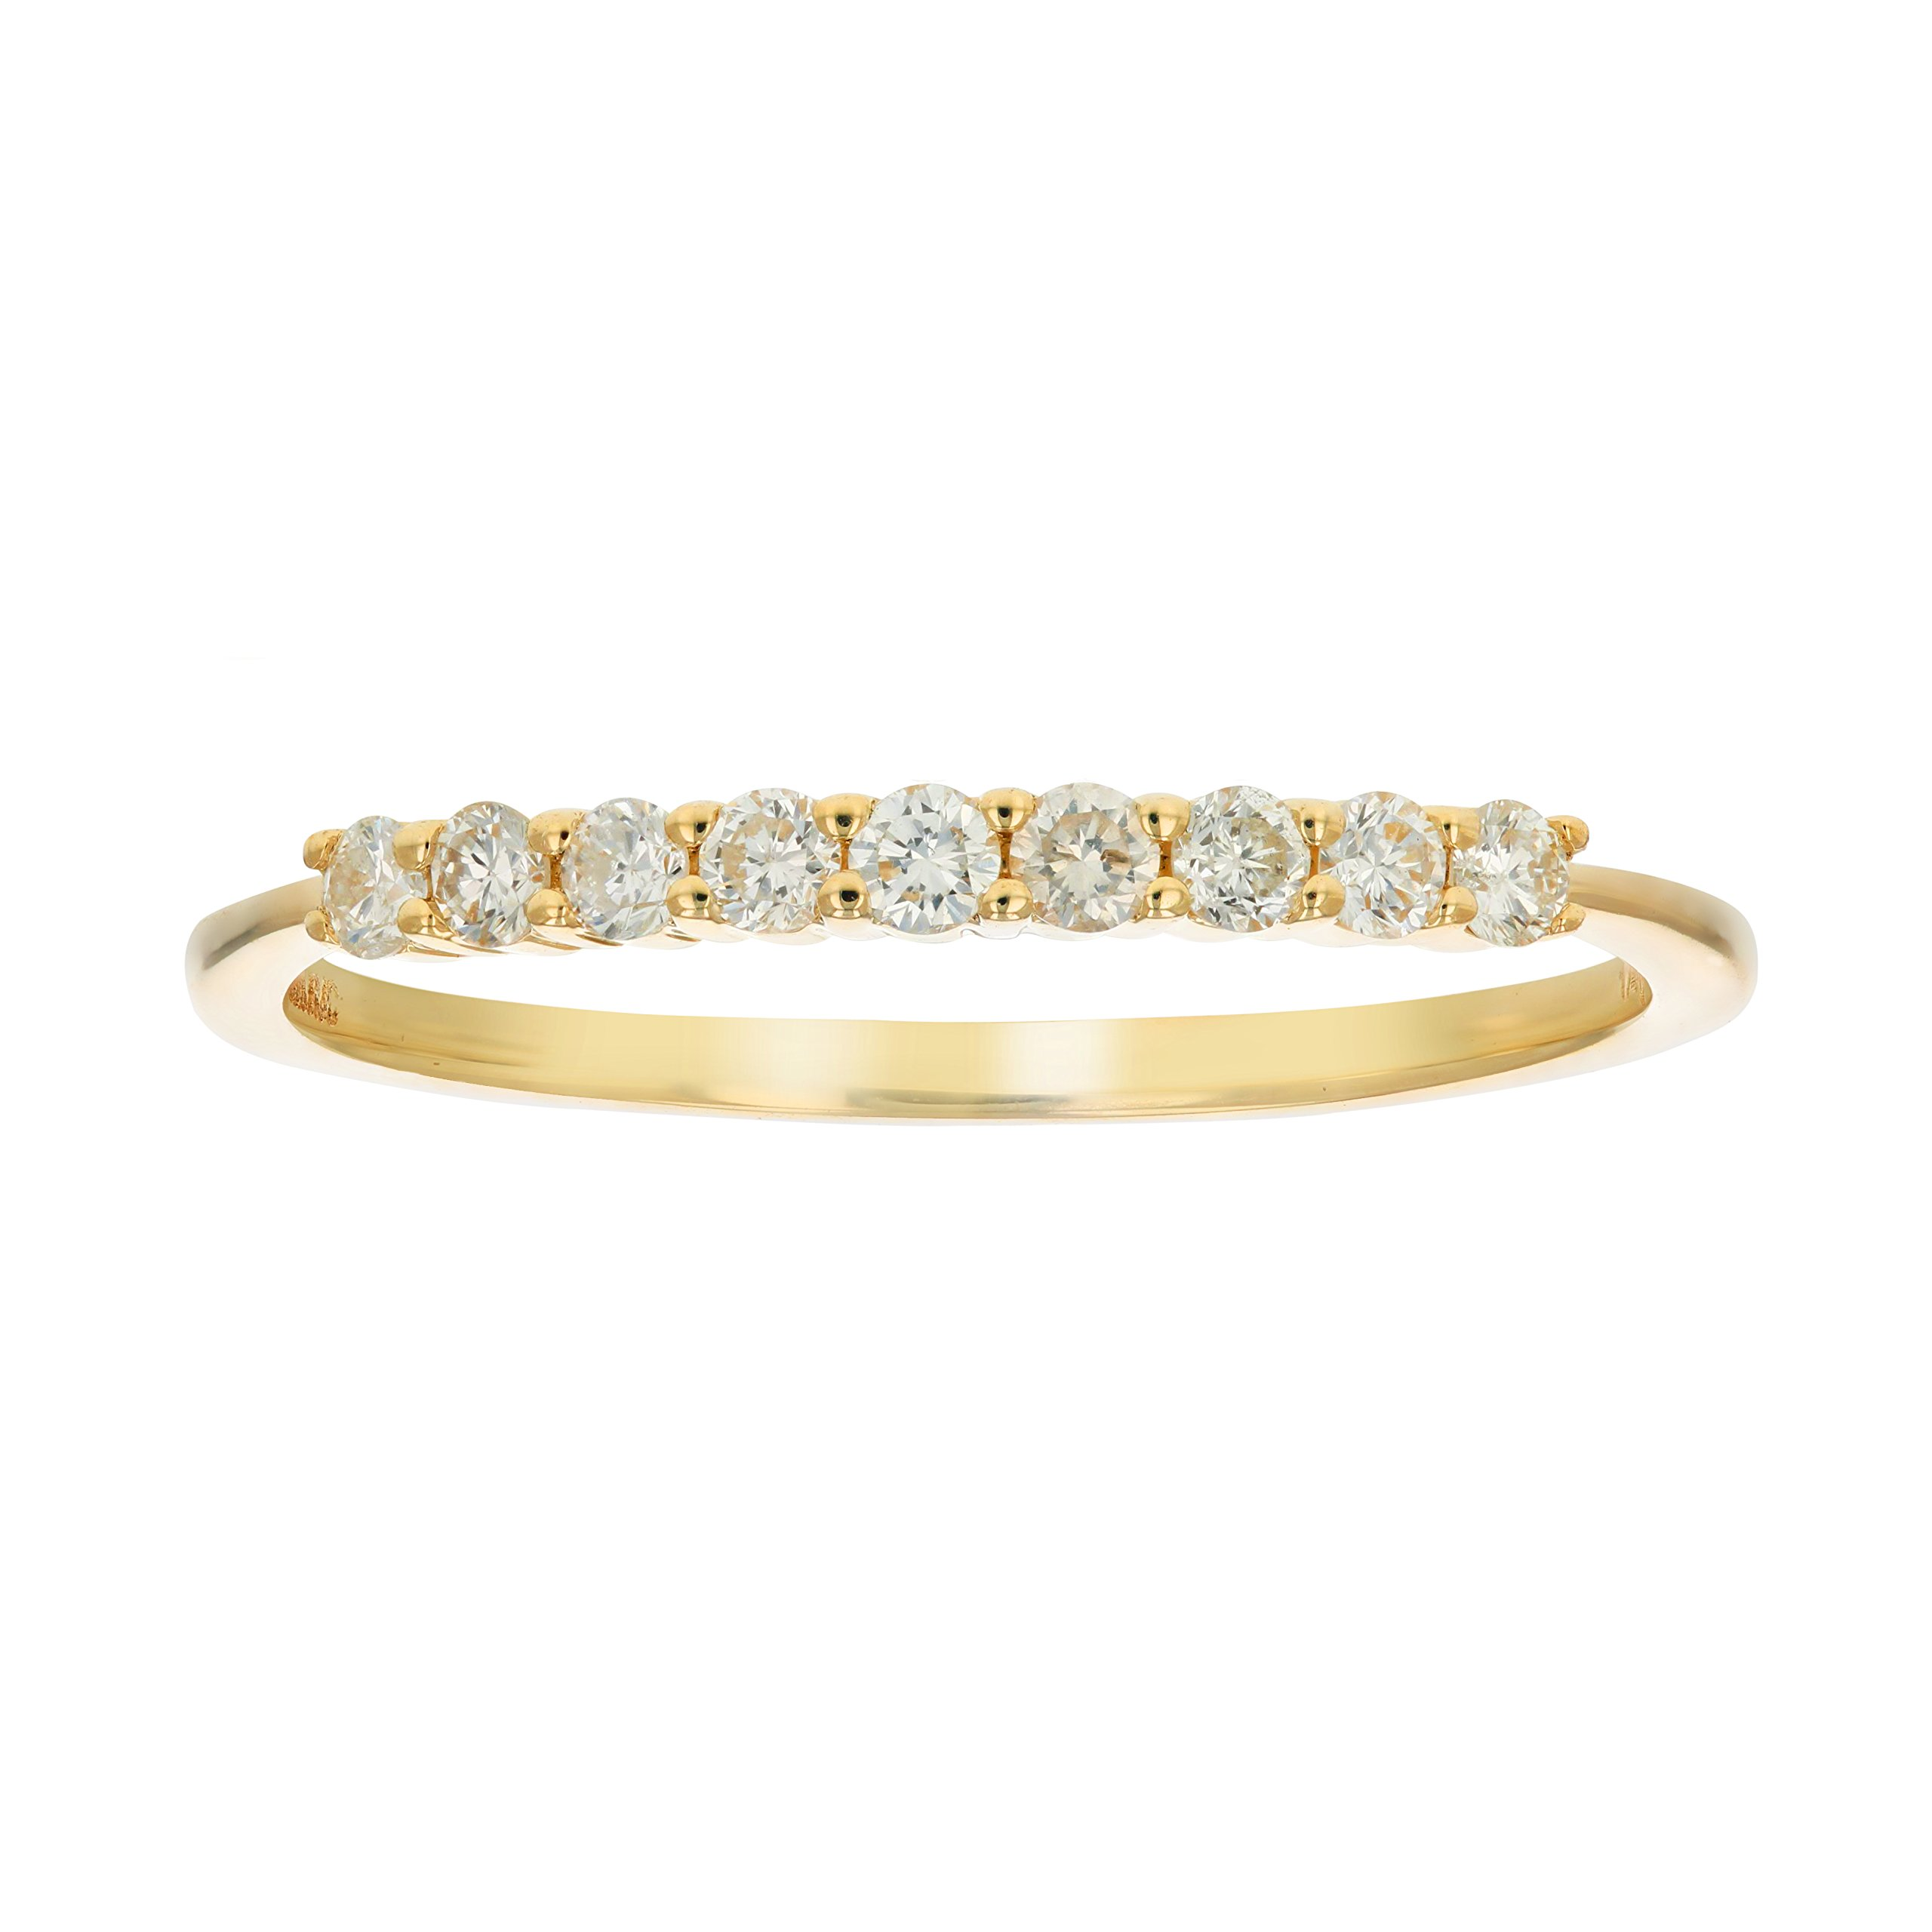 1/4 ctw Petite Diamond Wedding Band in 10K Yellow Gold Size 7